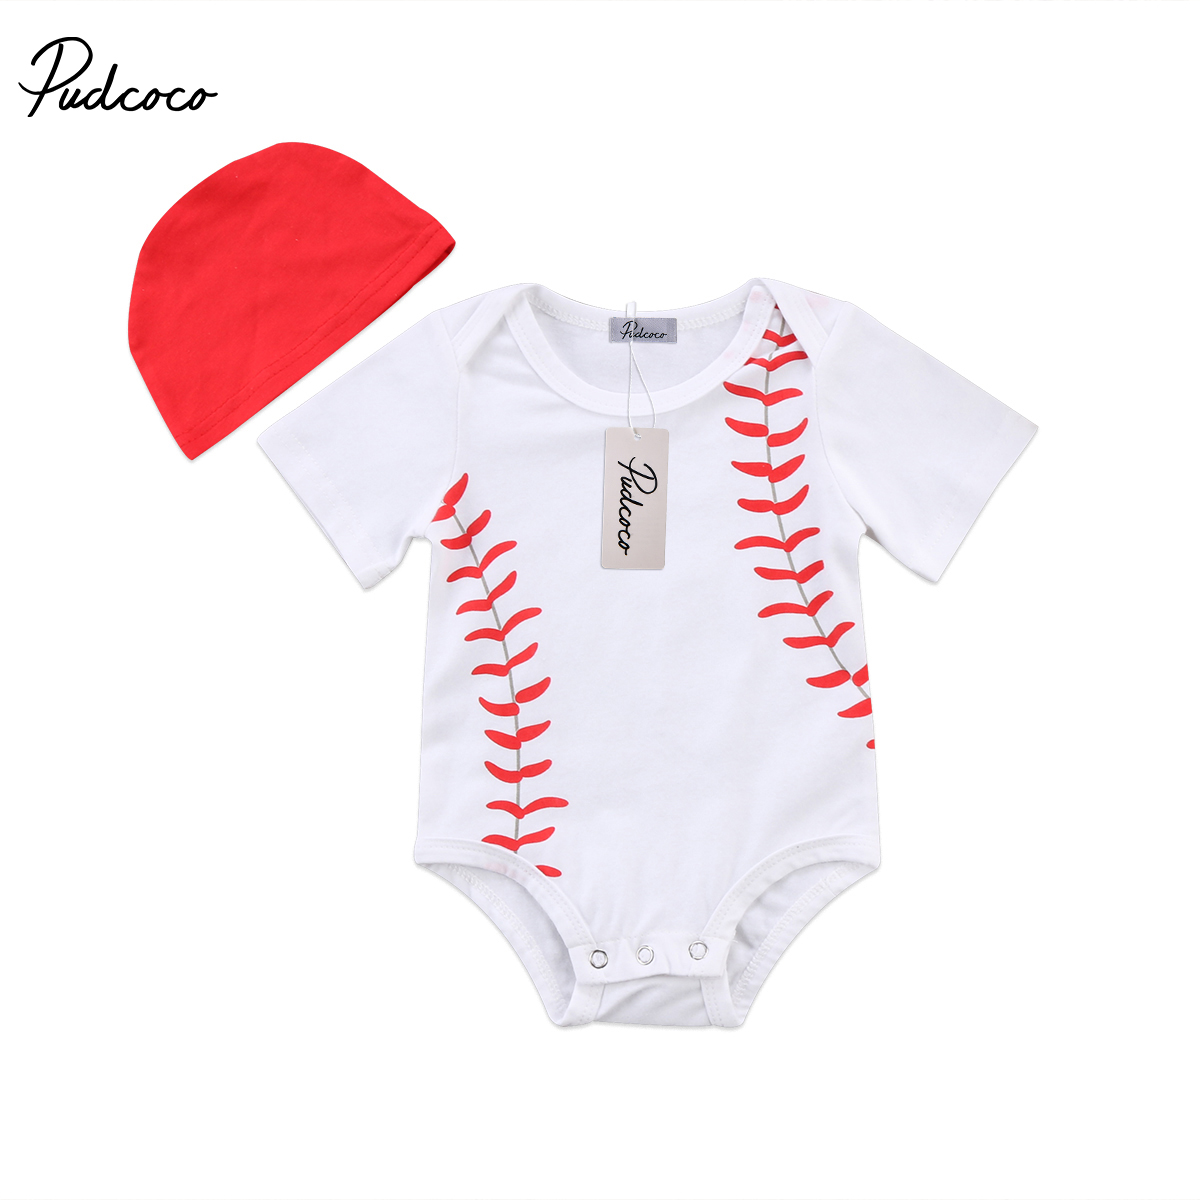 Helen115 Lovely baby girl clothes baby boy clothes Short Sleeve Bodysuit+Hat Outfits Set 0-24M